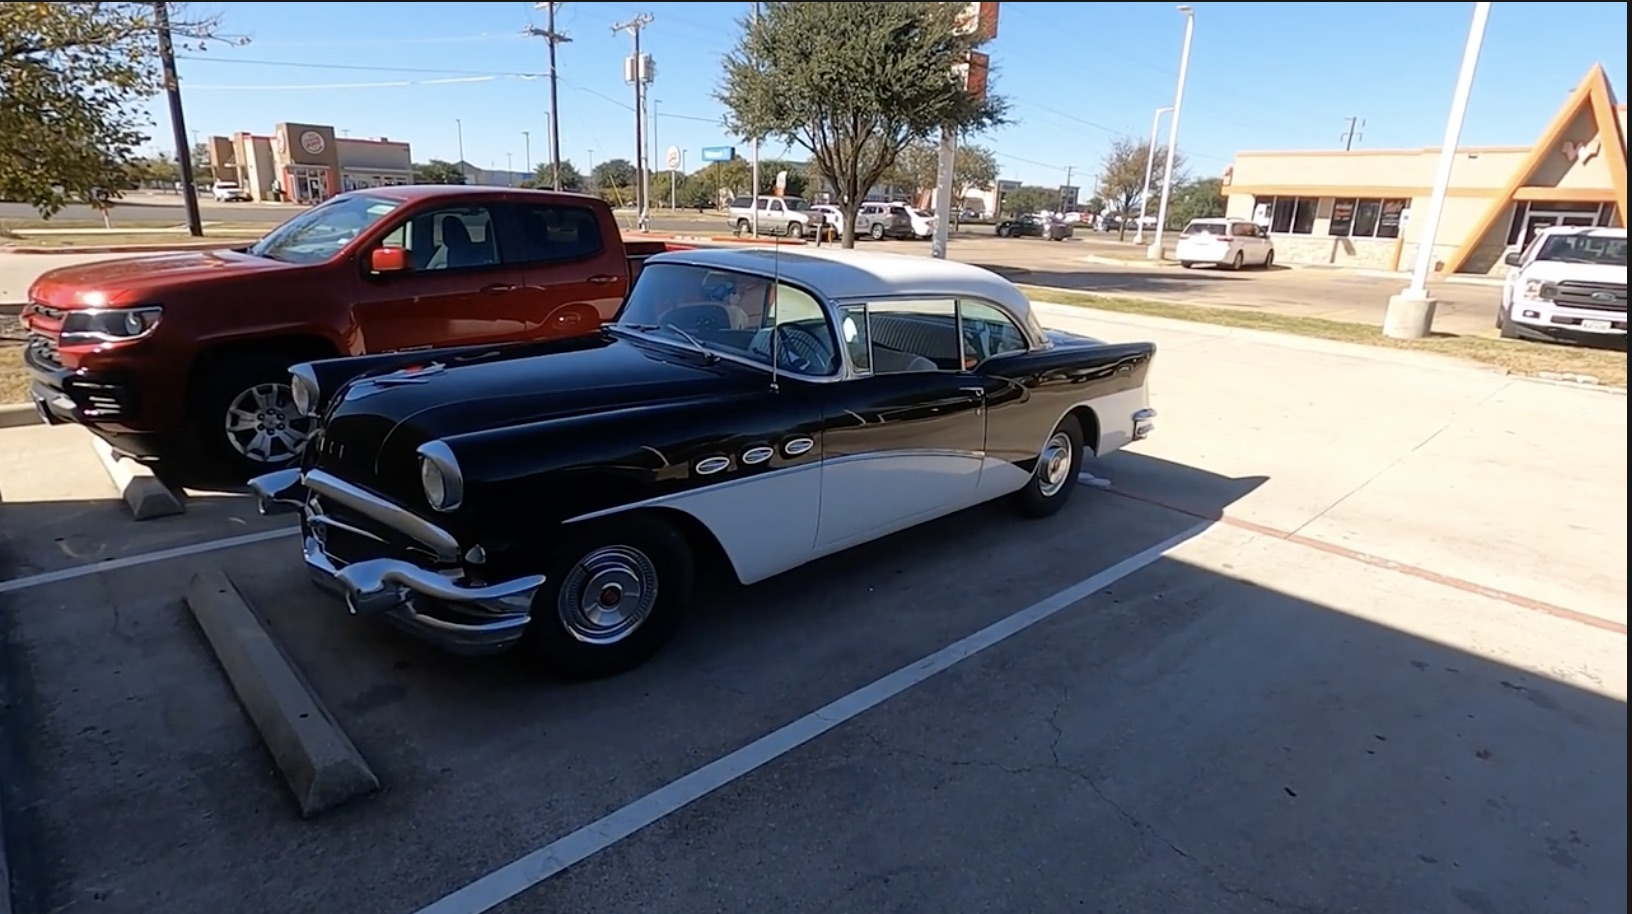 Prodigal Buick: Driving A 1956 Special Back Home Where It Belongs